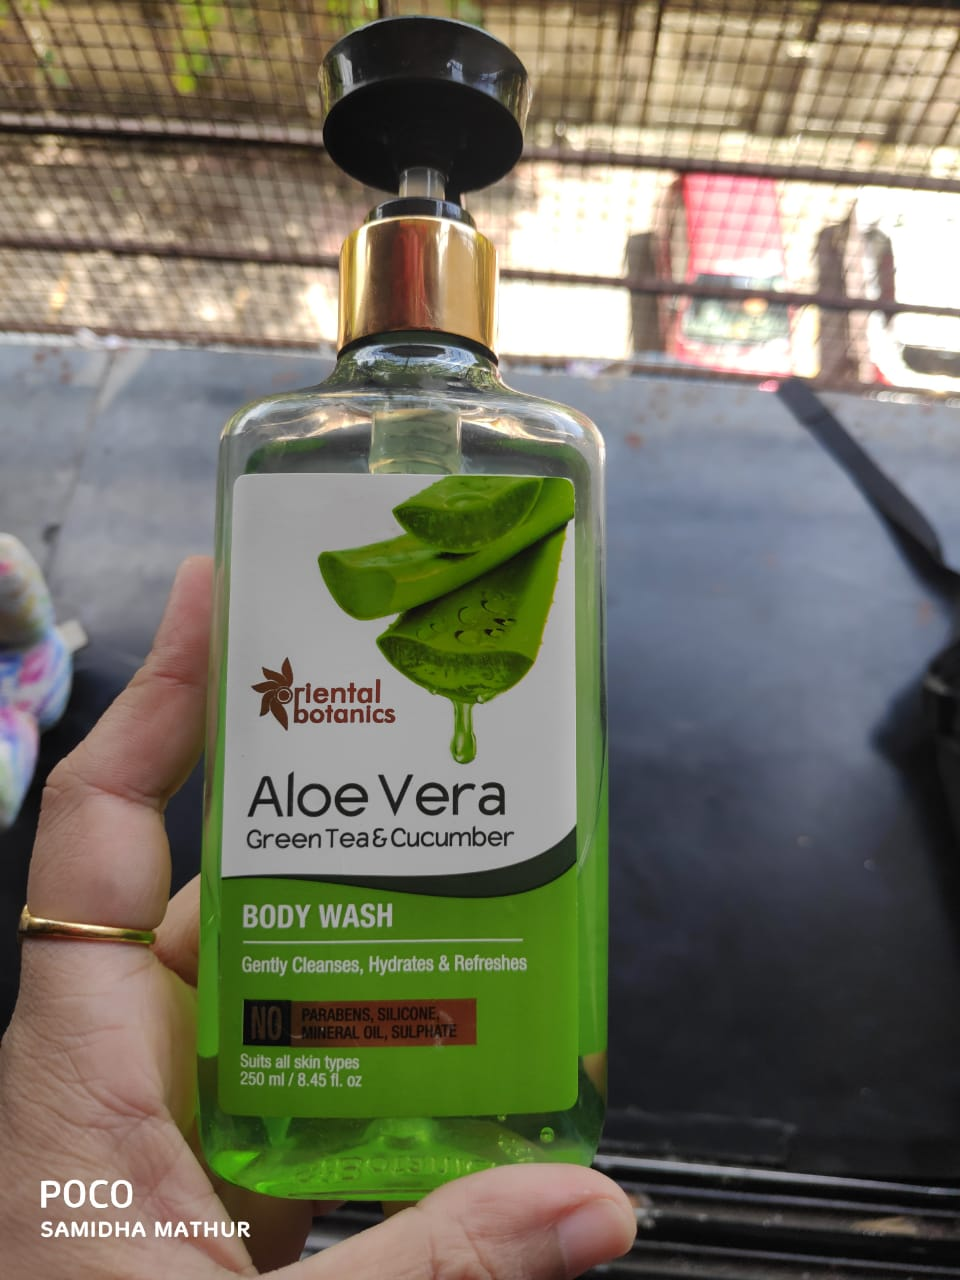 Oriental Botanics Aloe Vera Green Tea & Cucumber Body Wash-Better Than any Other Body Wash-By Samidha_Mathur-2